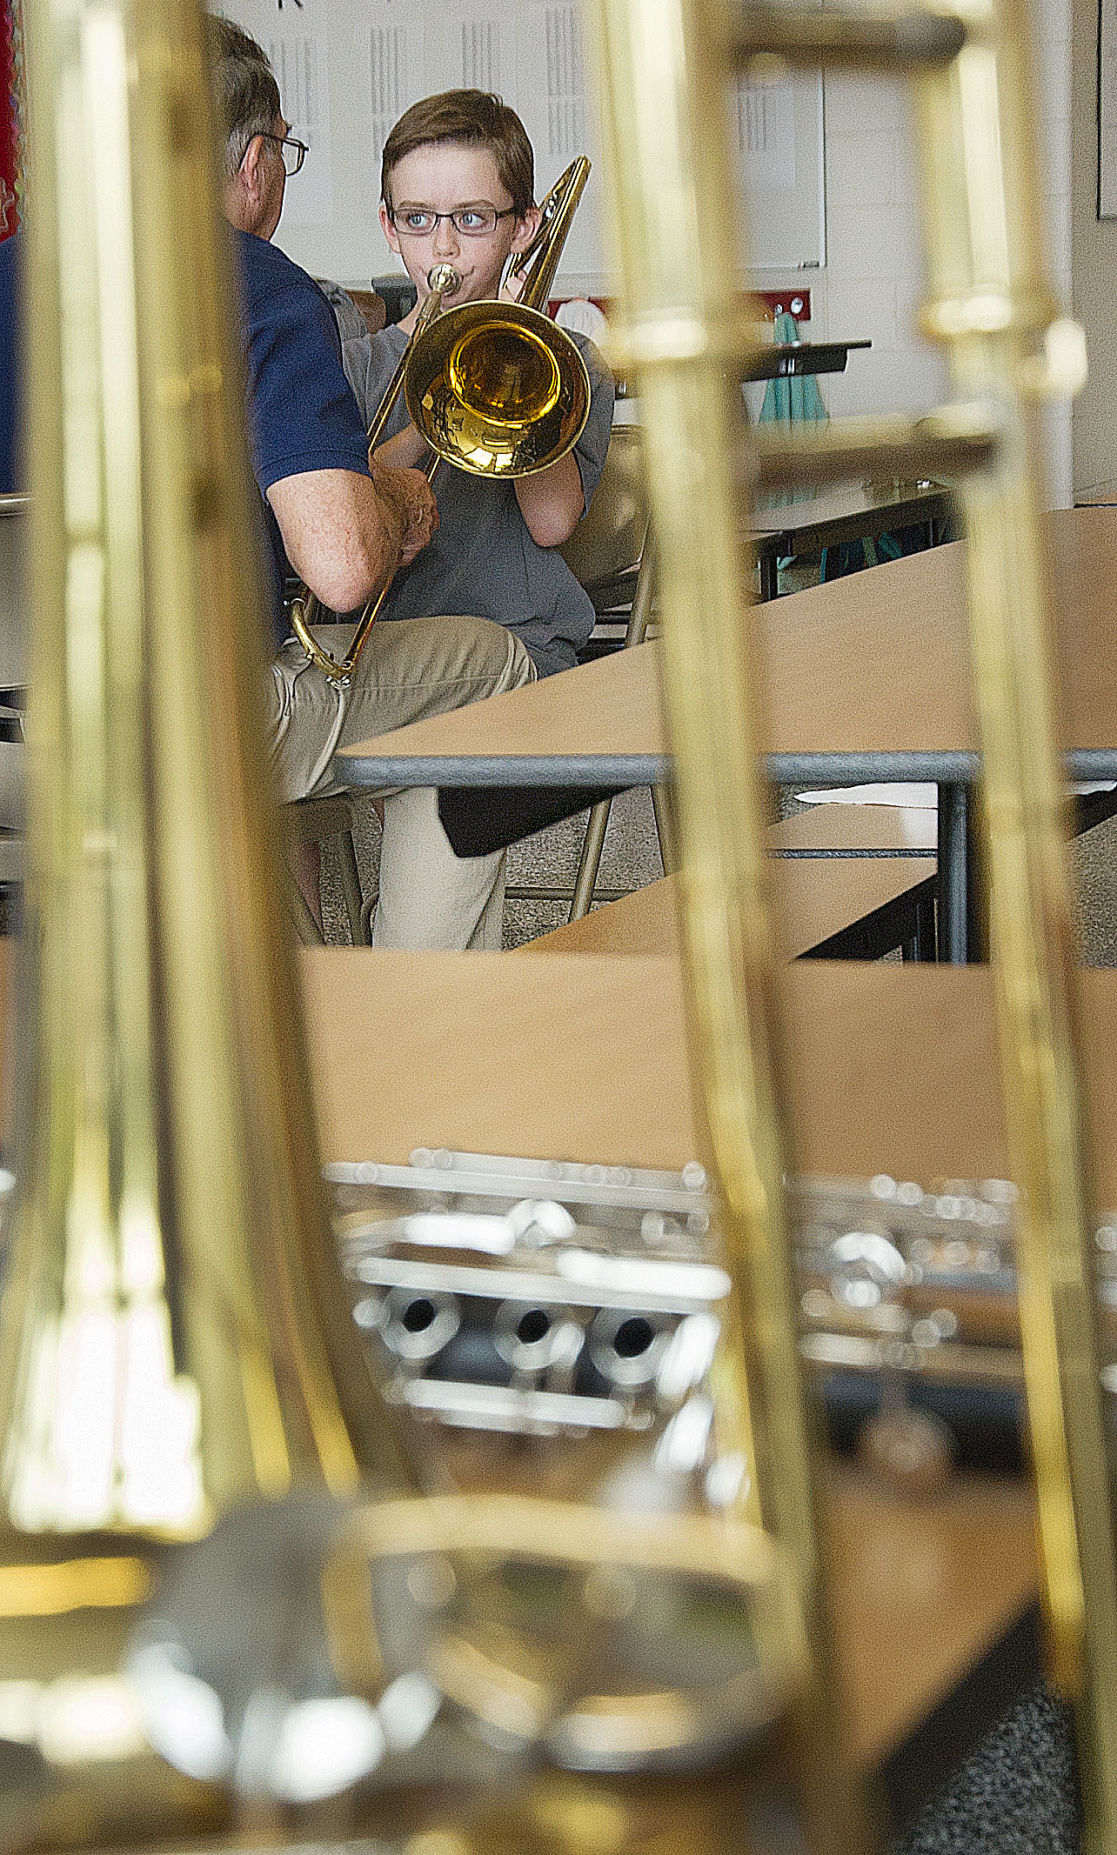 Jefferson band tryouts-Rudolph